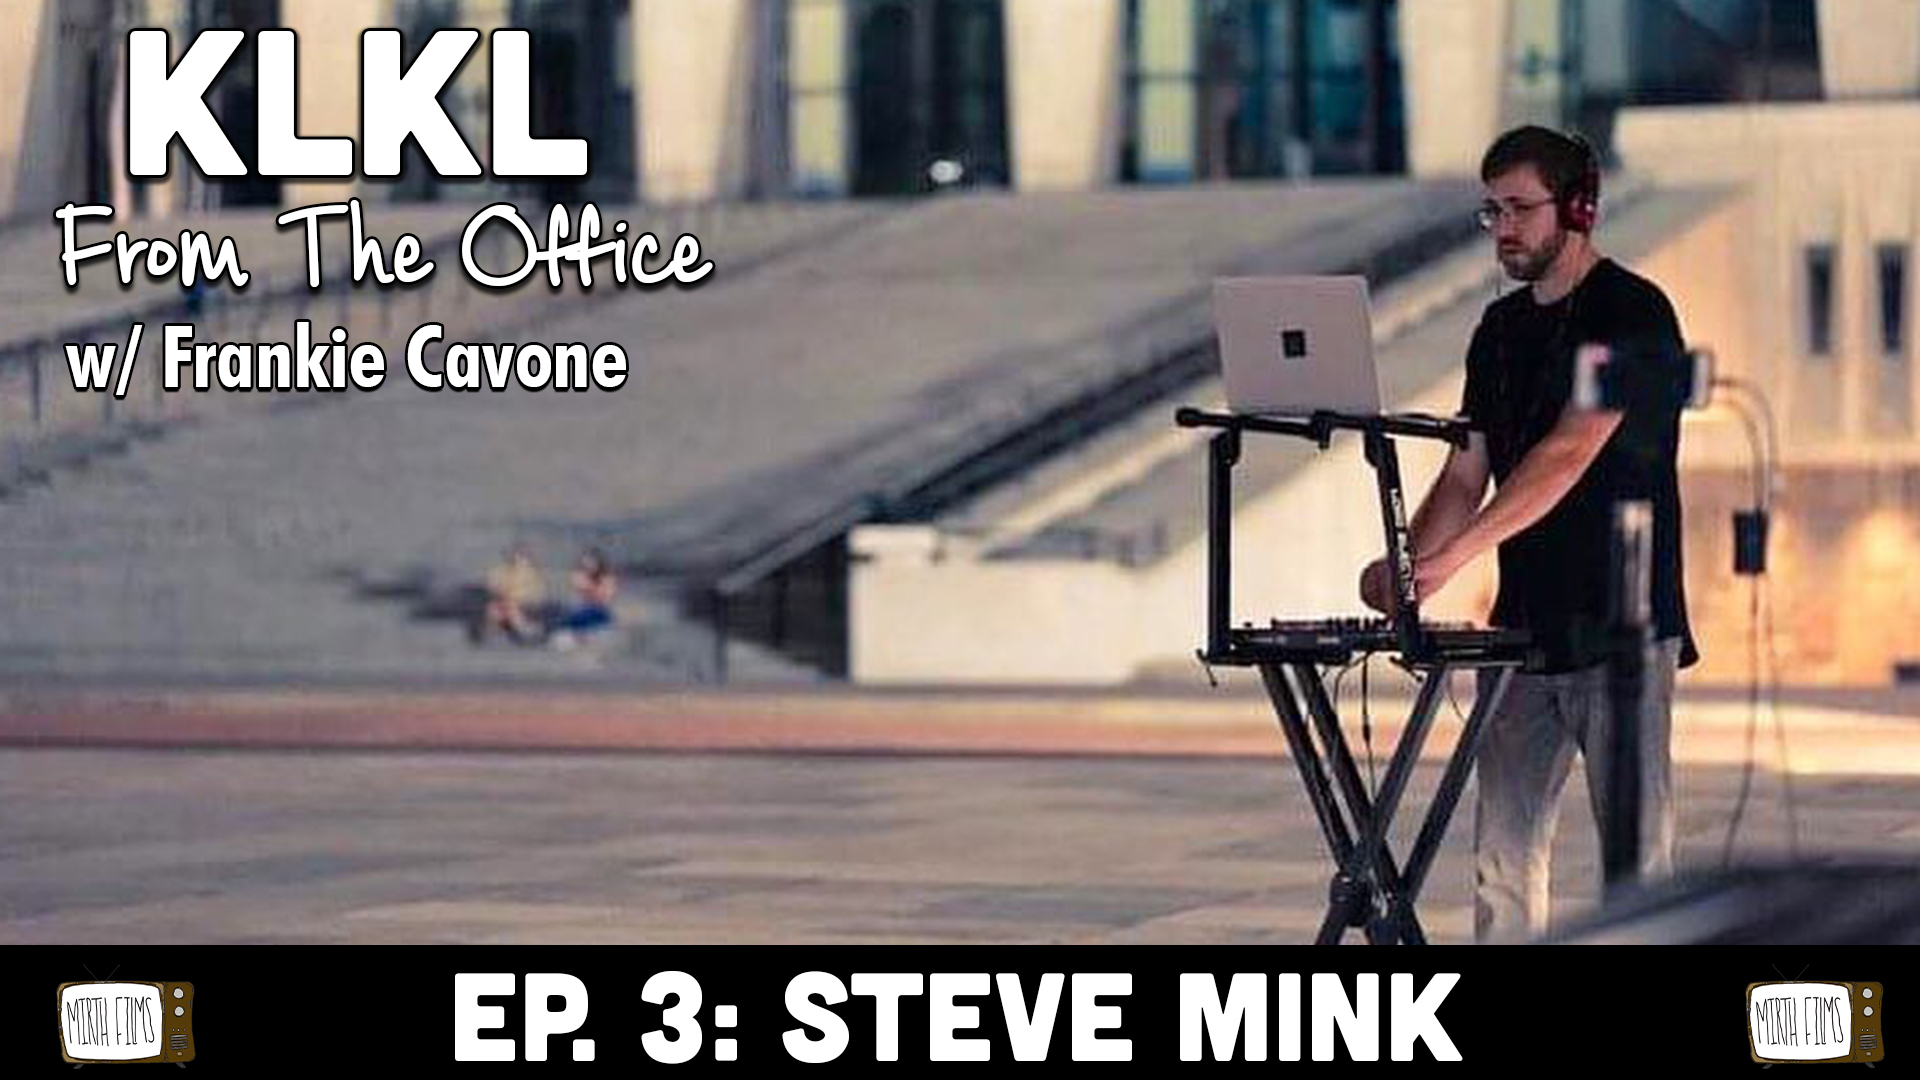 Steve Mink | From The Office EP. 3 with Frankie Cavone